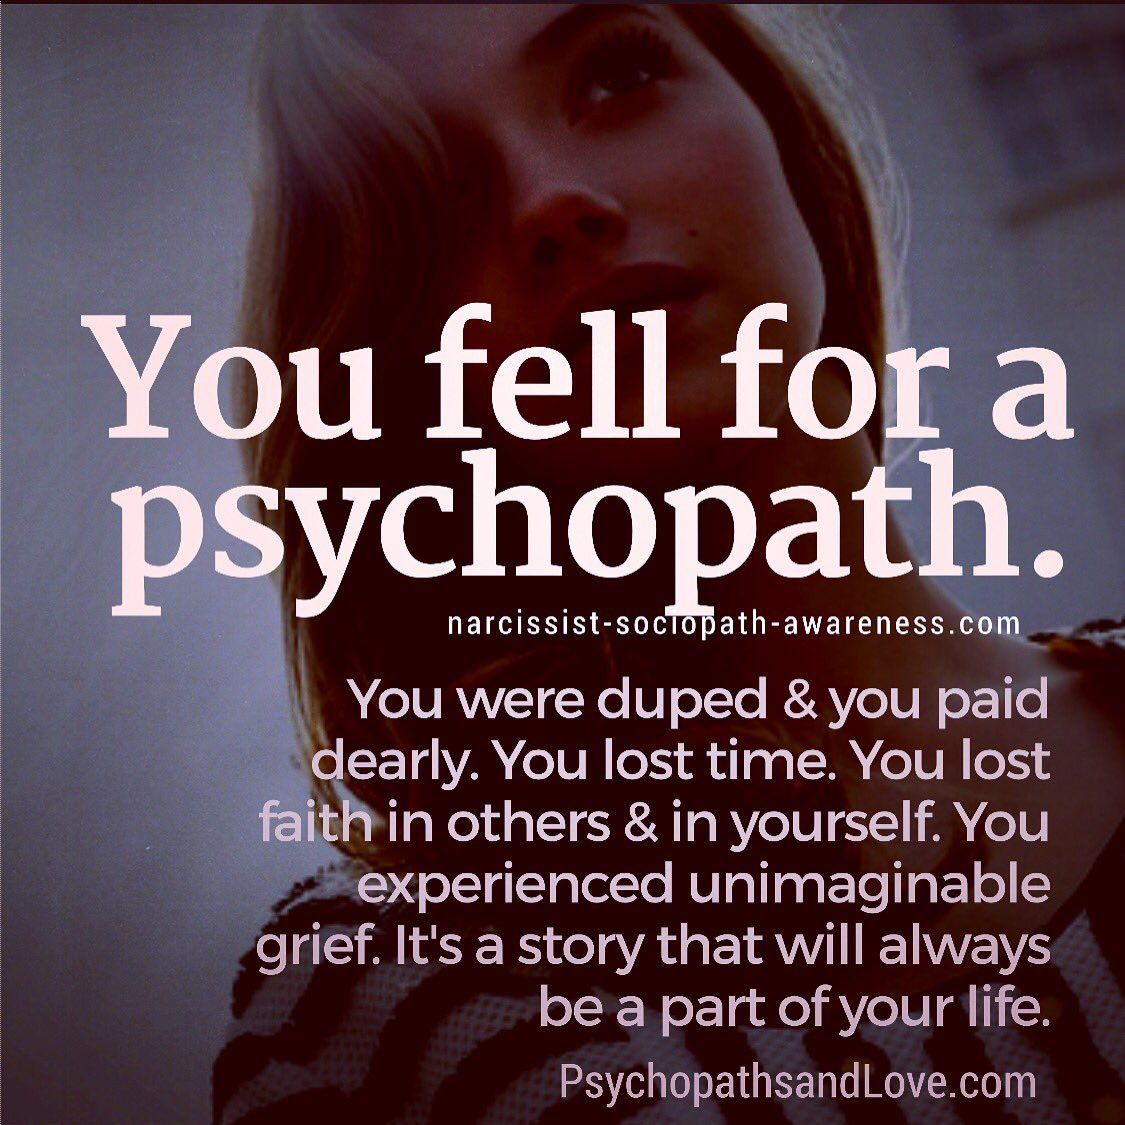 Stolen 12yrs of my life.... He gets of scott free while I have to deal with the consequences of the abuse/pain he's caused me for the rest of my life a prisoner to the scars he's left on my heart soul and mind and that's just so unfair but unfortunately the way it is....